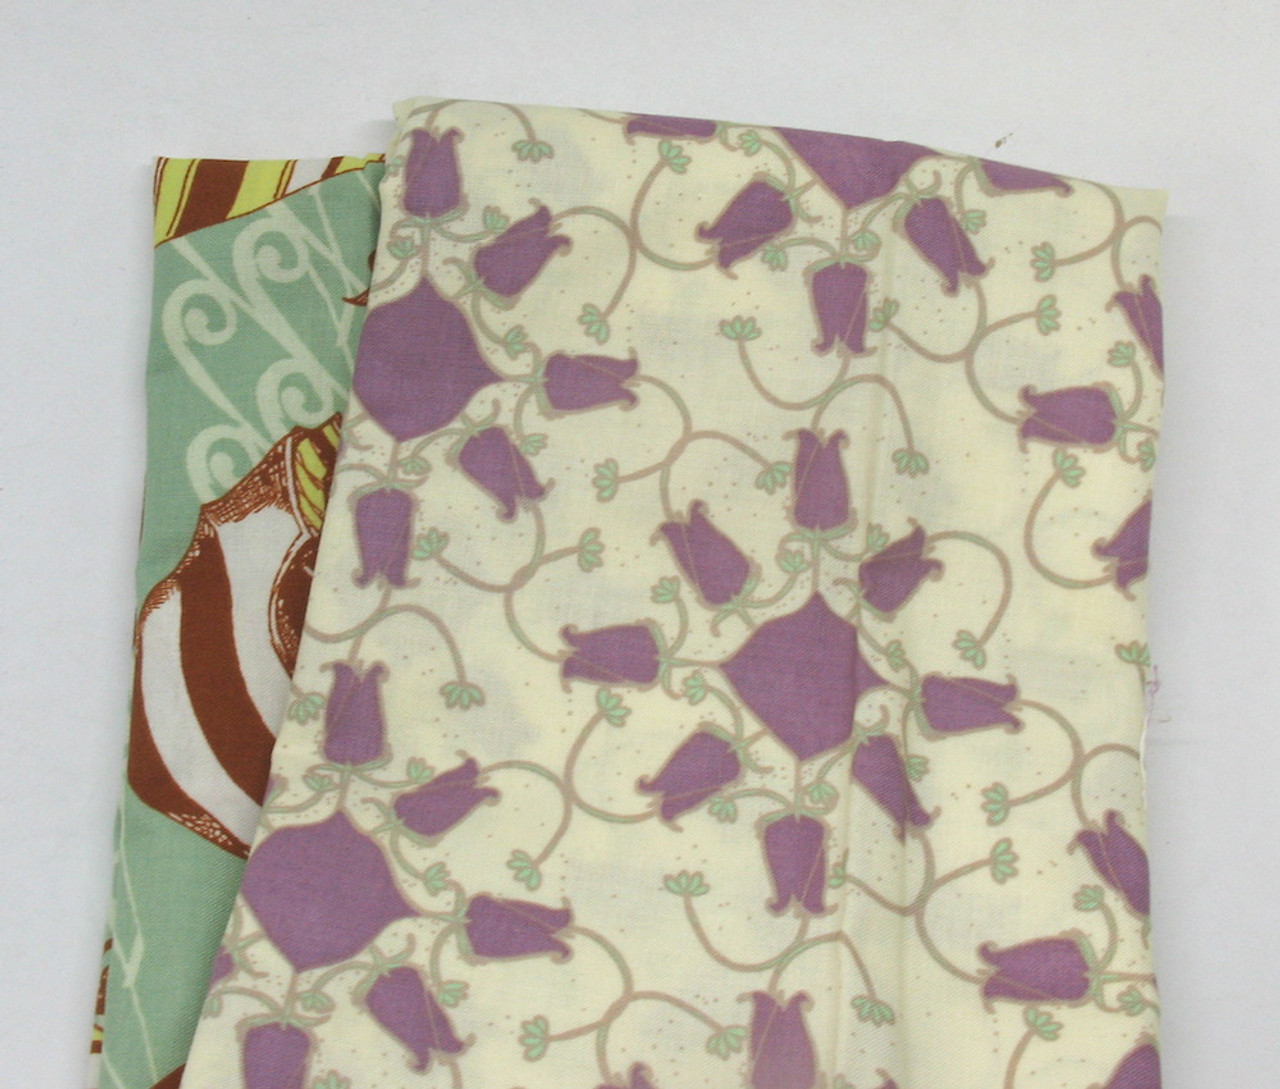 Tina Givens Assortment RP3799 Cotton Fabric Remnant Pack